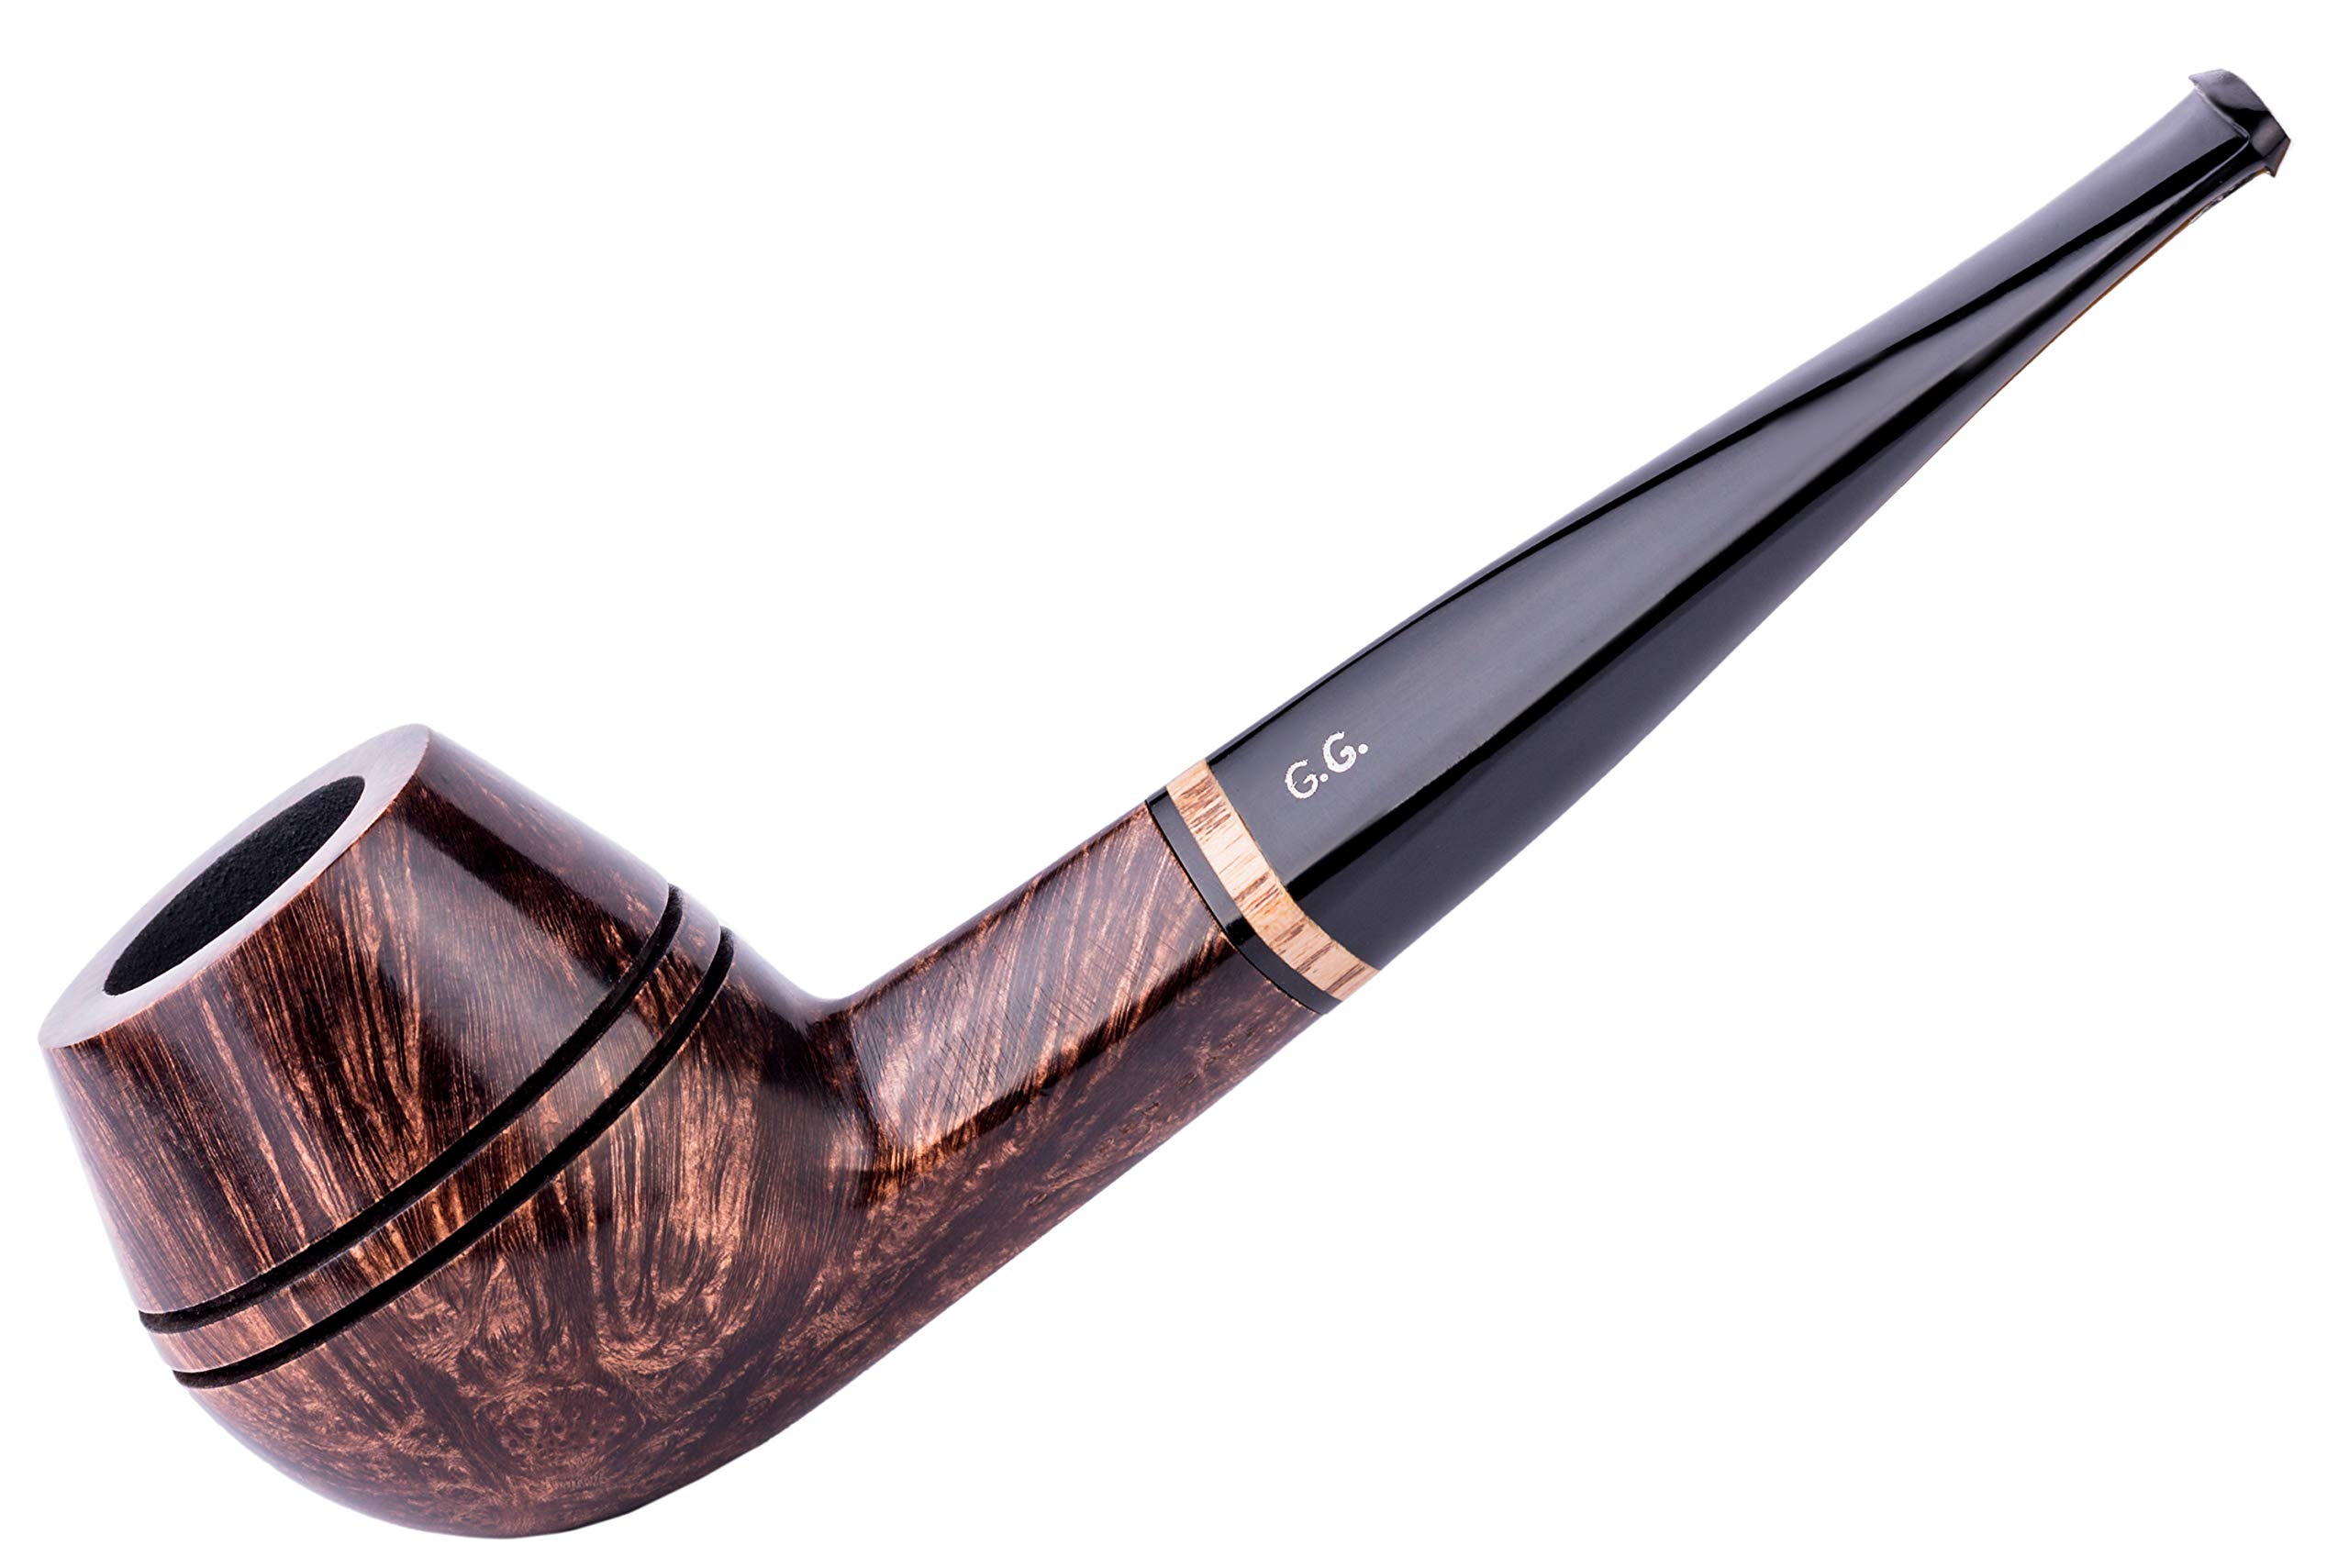 Watson&G.G. - BRIAR Tobacco Smoking pipe - Bulldog - Hand Made, Smooth ( 9mm filter) + Branded Pouch (special edition for Watson) (Dark Brown)